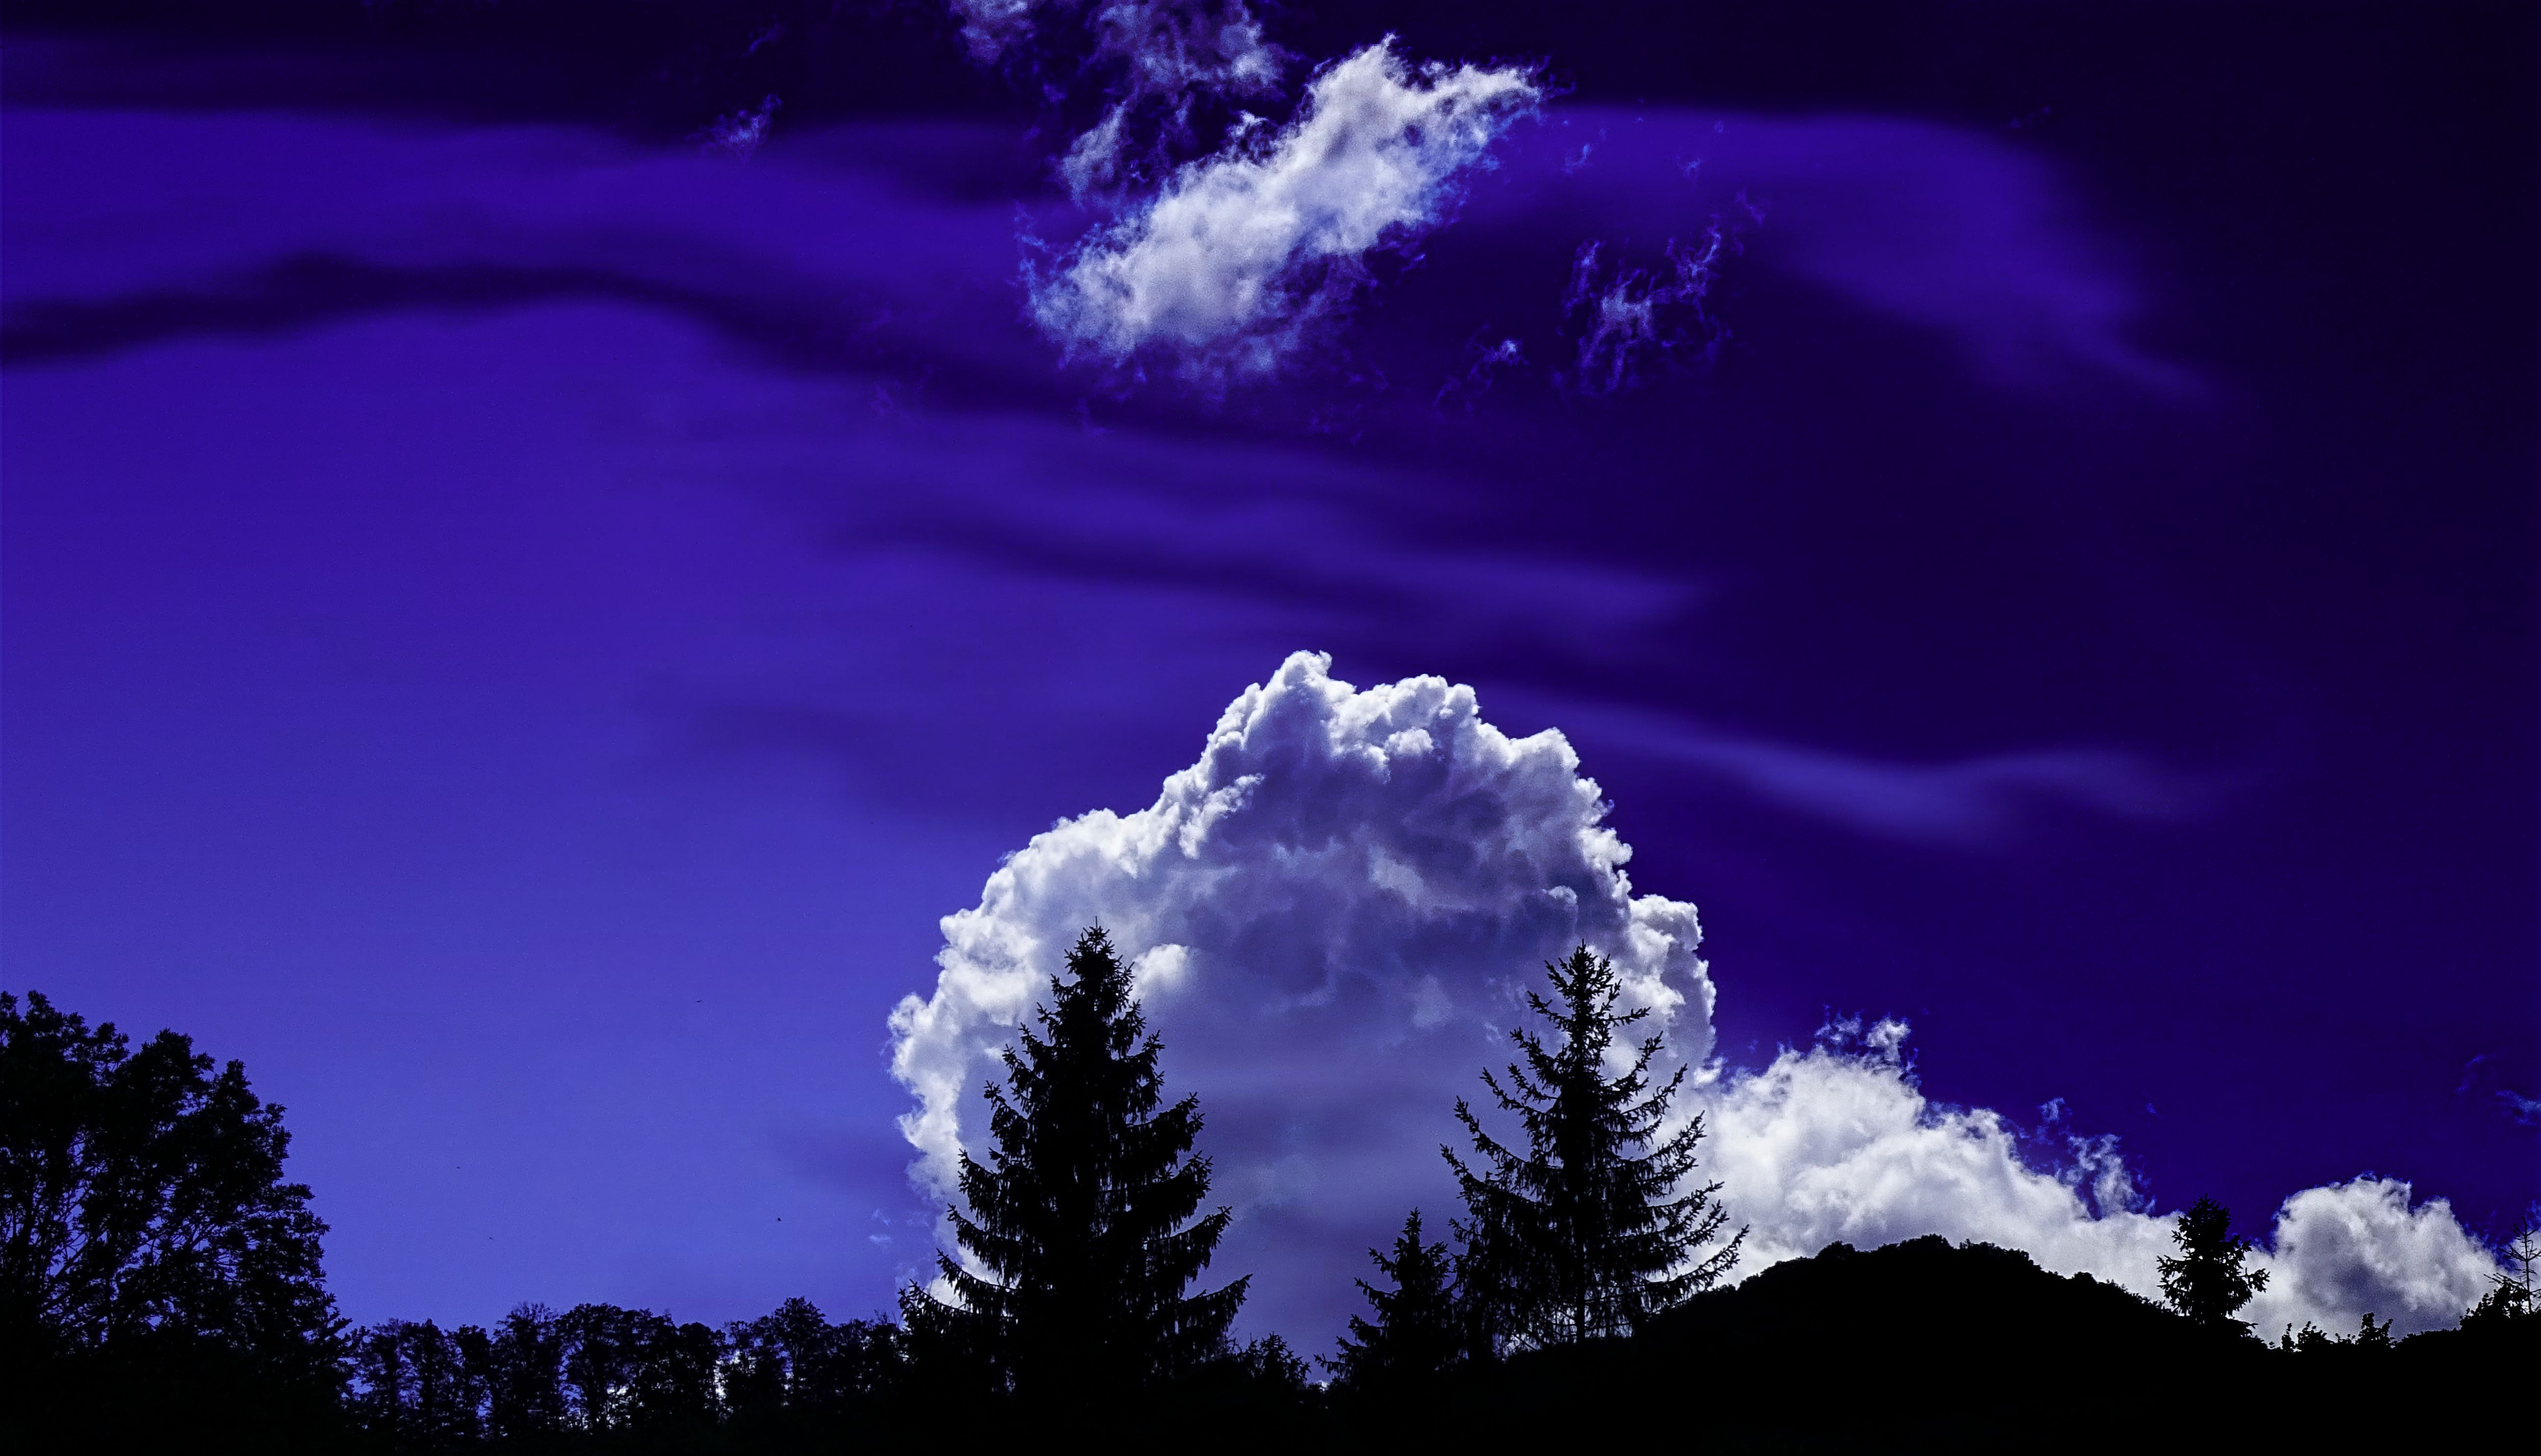 Trees Under White Clouds and Blue Sky, Outdoors, Trees, Sky, Silhouettes, HQ Photo